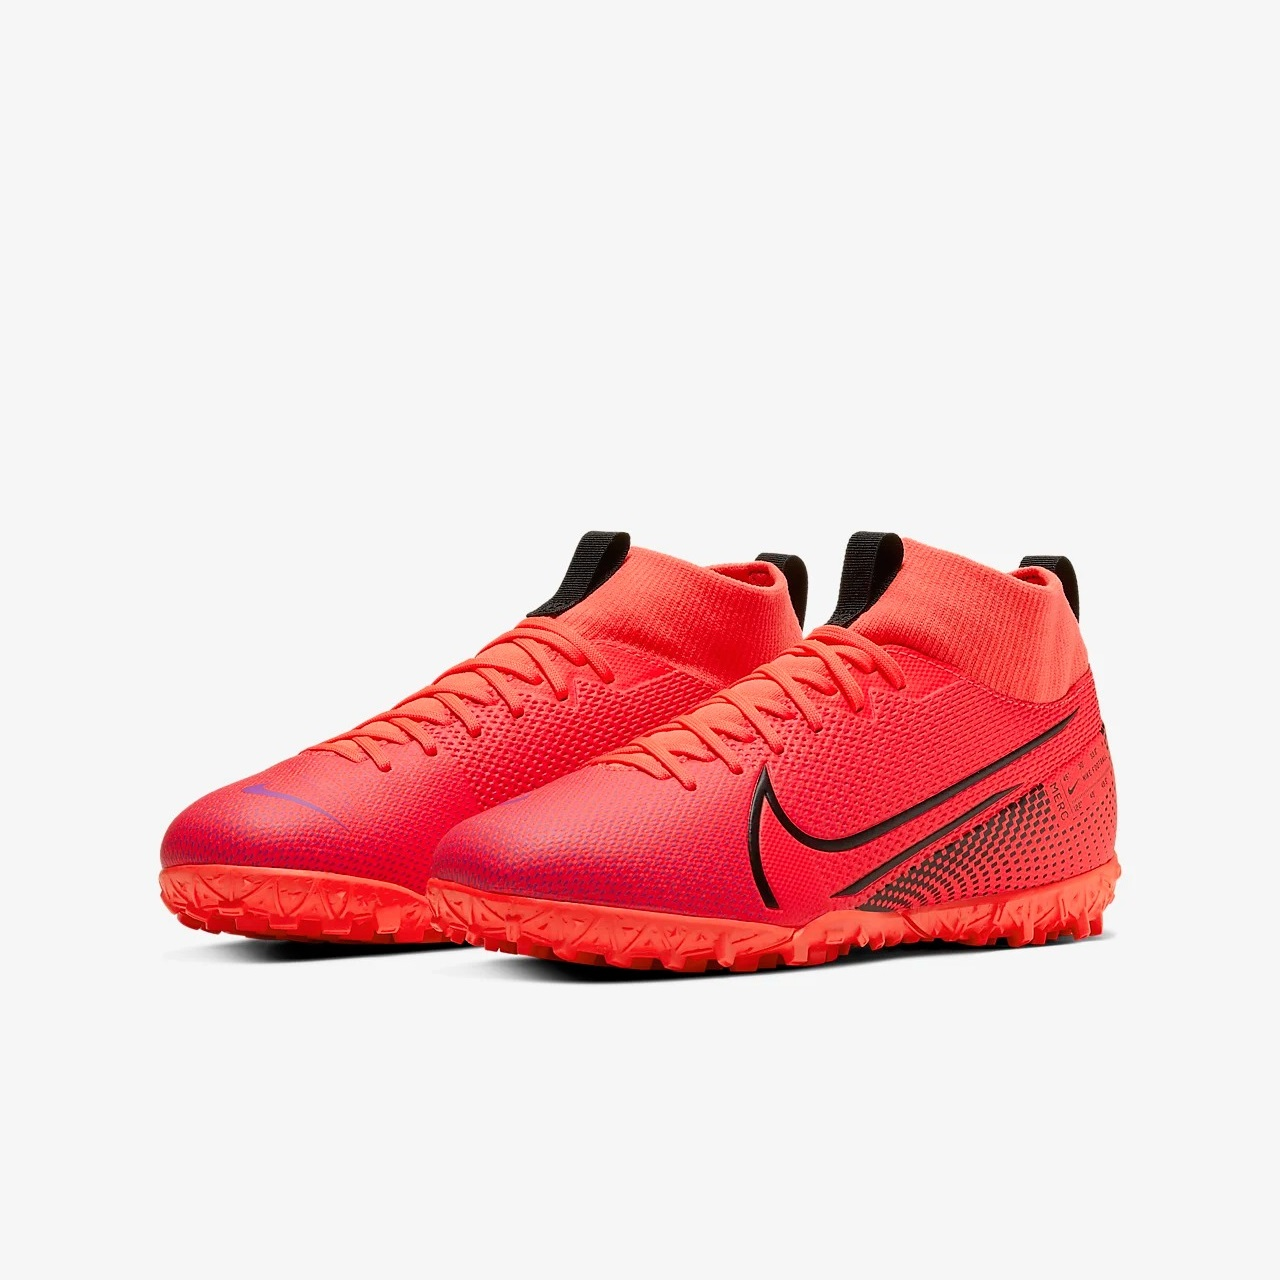 NIKE SUPERFLY 7 ACADEMY TF AT8143-606 JR